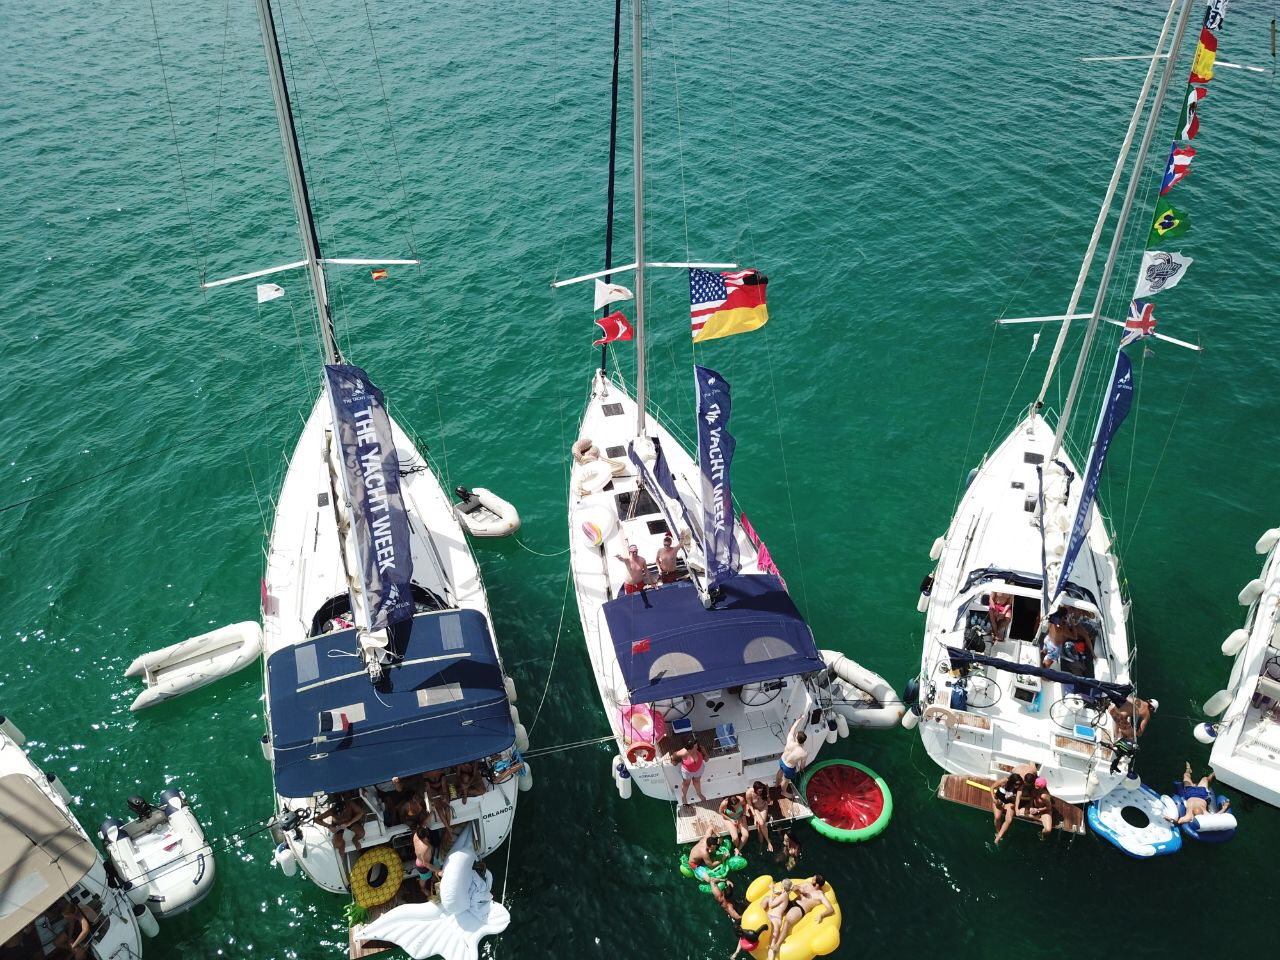 Floaties and flags are must when sailing with  TYW. The half American/German flag belongs to Axel and me to represent both our nations. It's makes it easy when coming back in the evenings to find your boat.